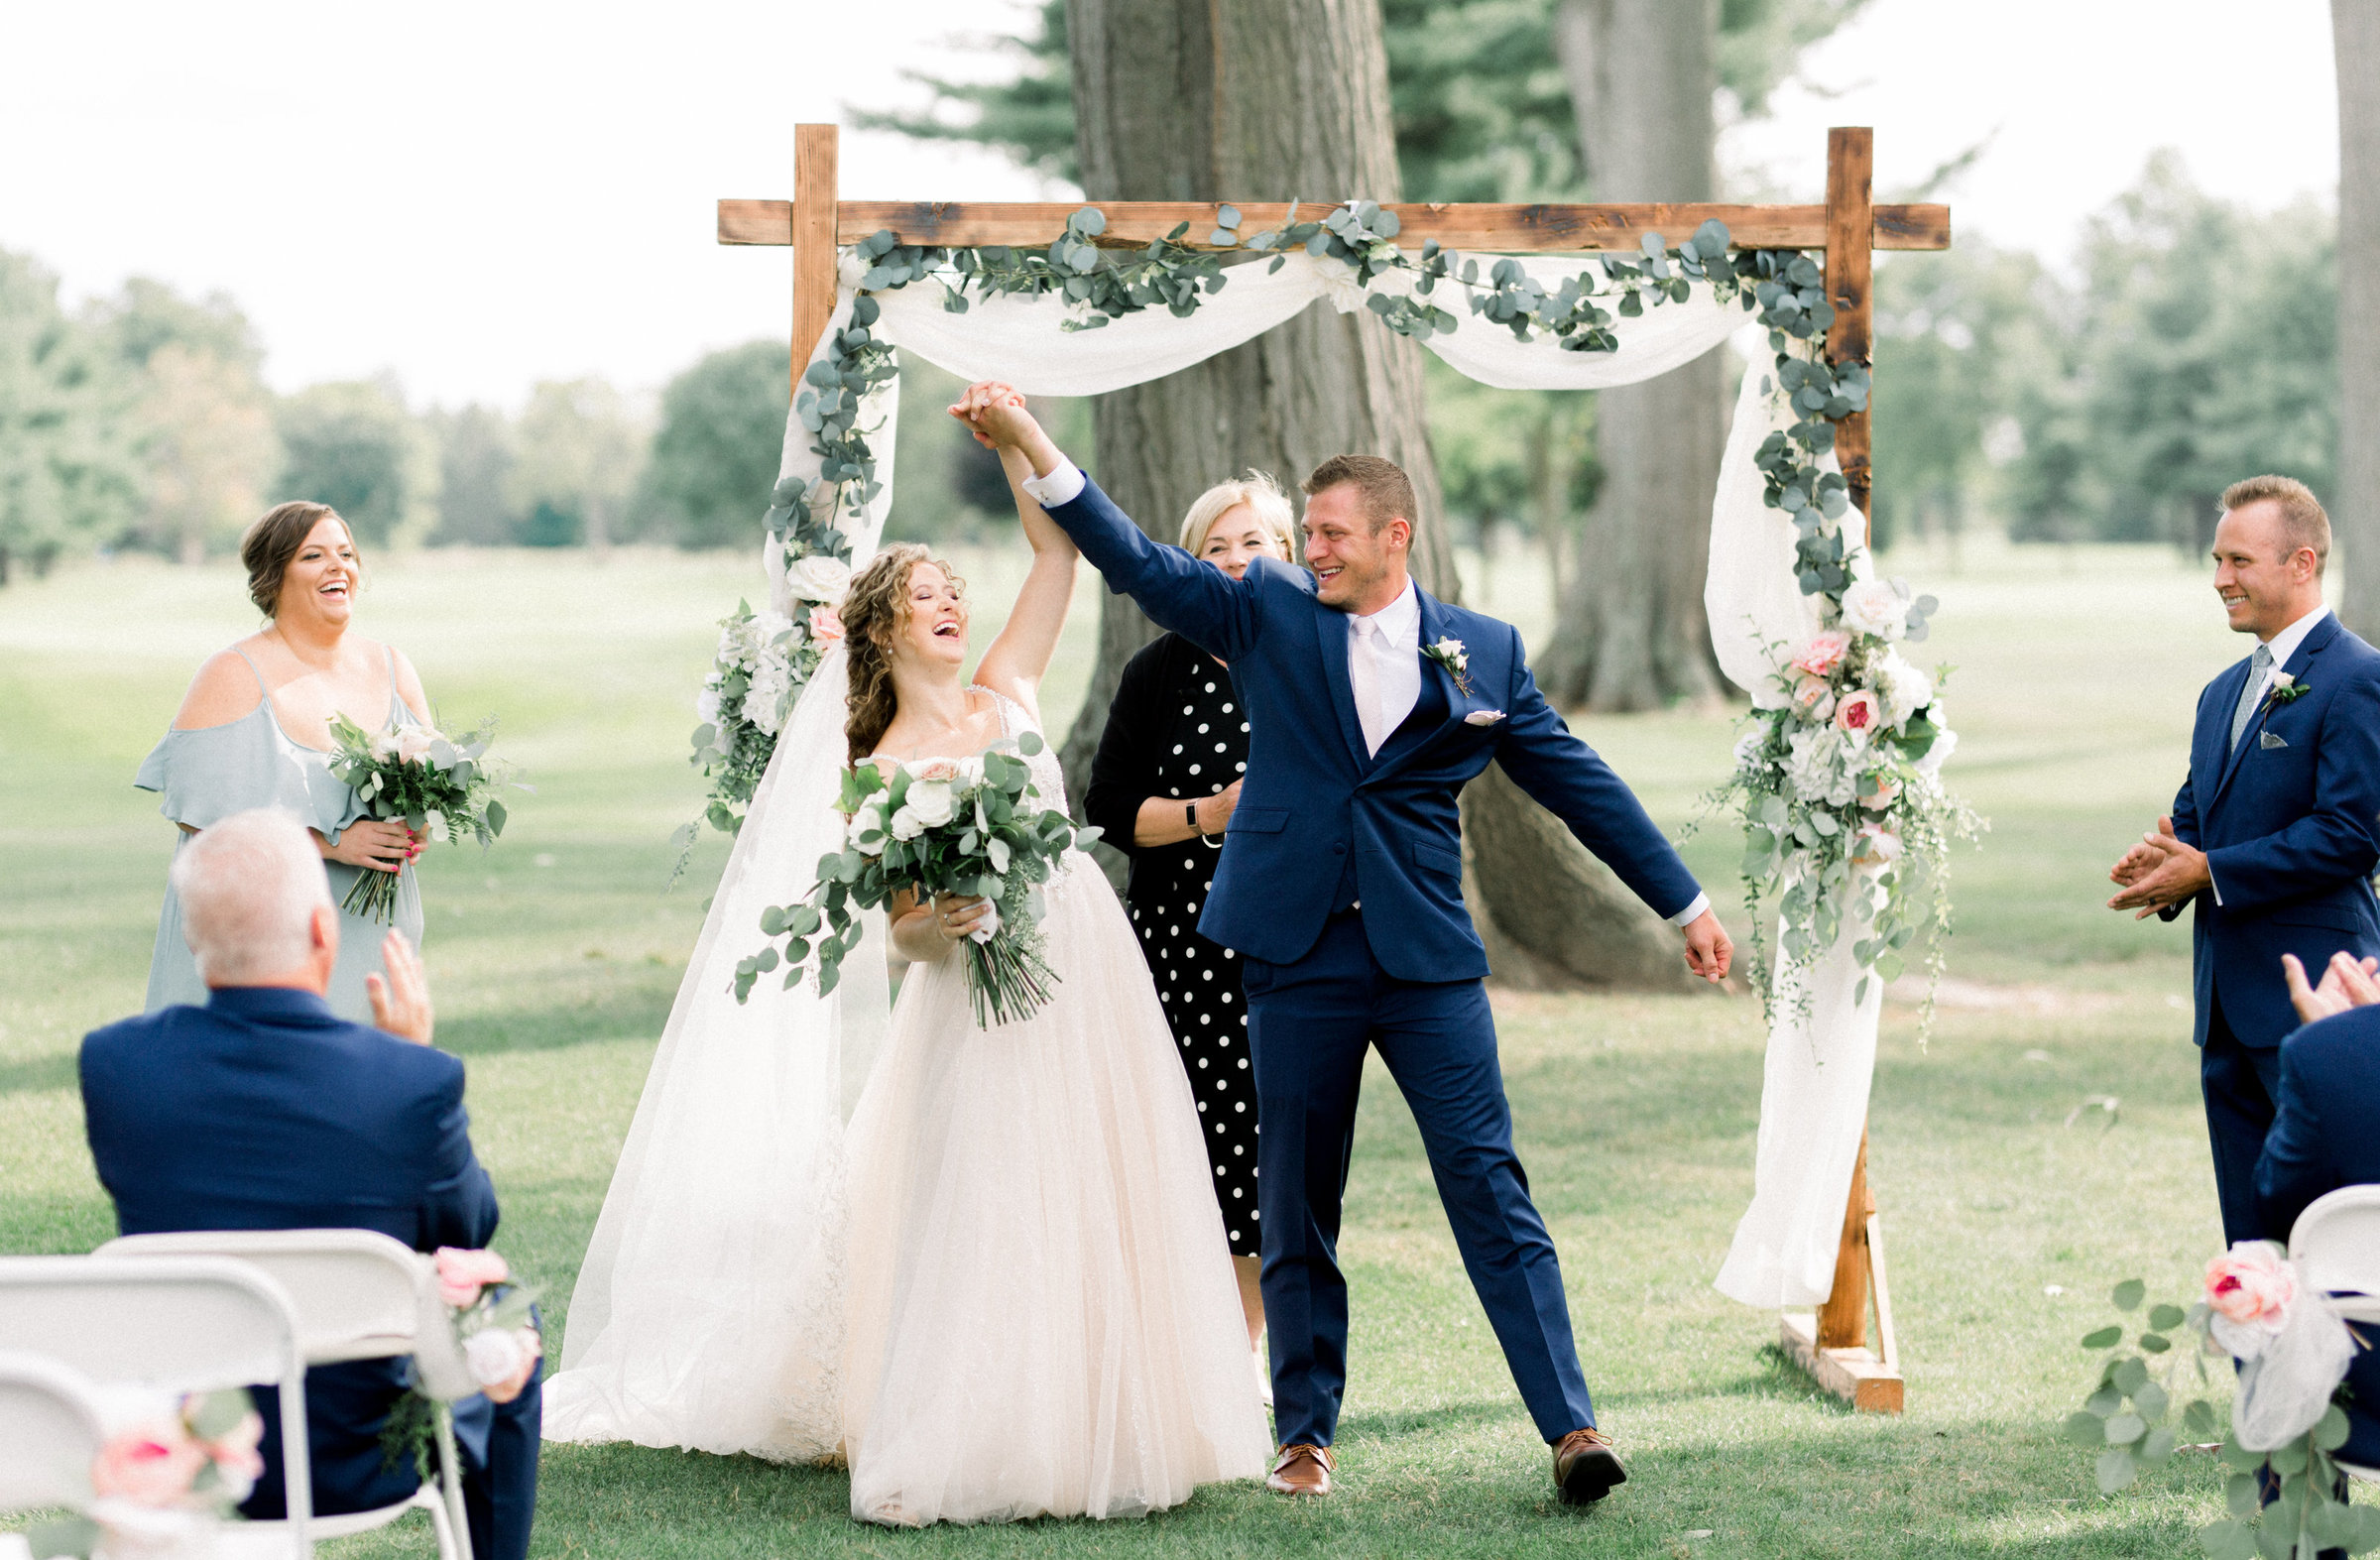 Bride and groom share excitement as they wrap up their wedding ceremony at Owosso Country Club in Lansing Michigan photo by Wedding Photographer in Grand Rapids, Cynthia Boyle